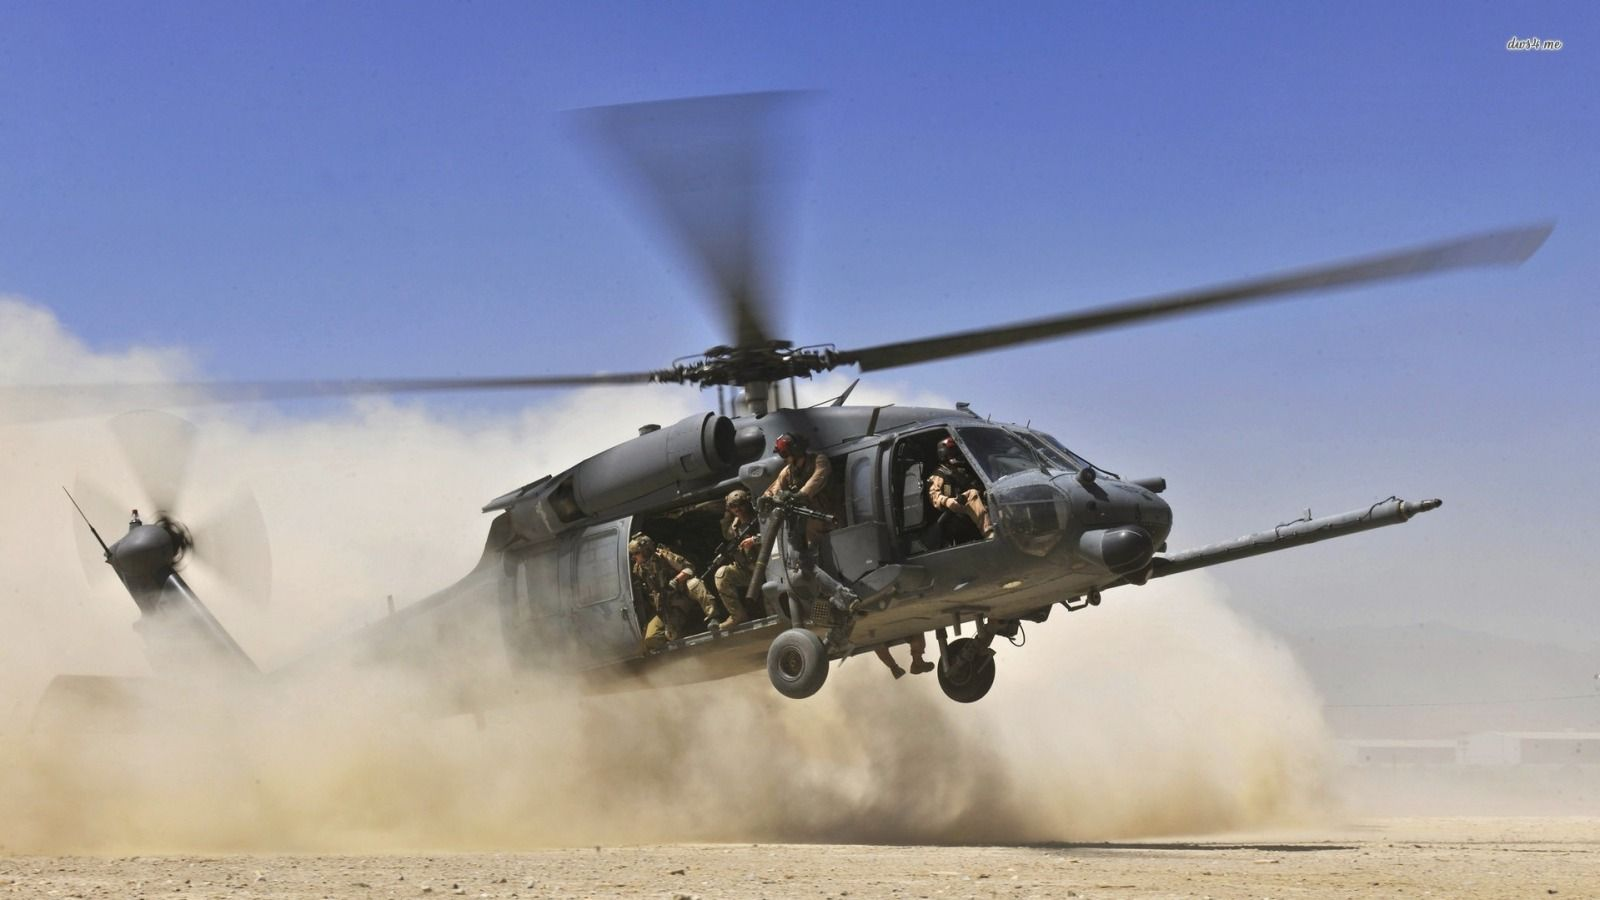 Sikorsky HH 60 Pave Hawk Military helicopter, Black hawk